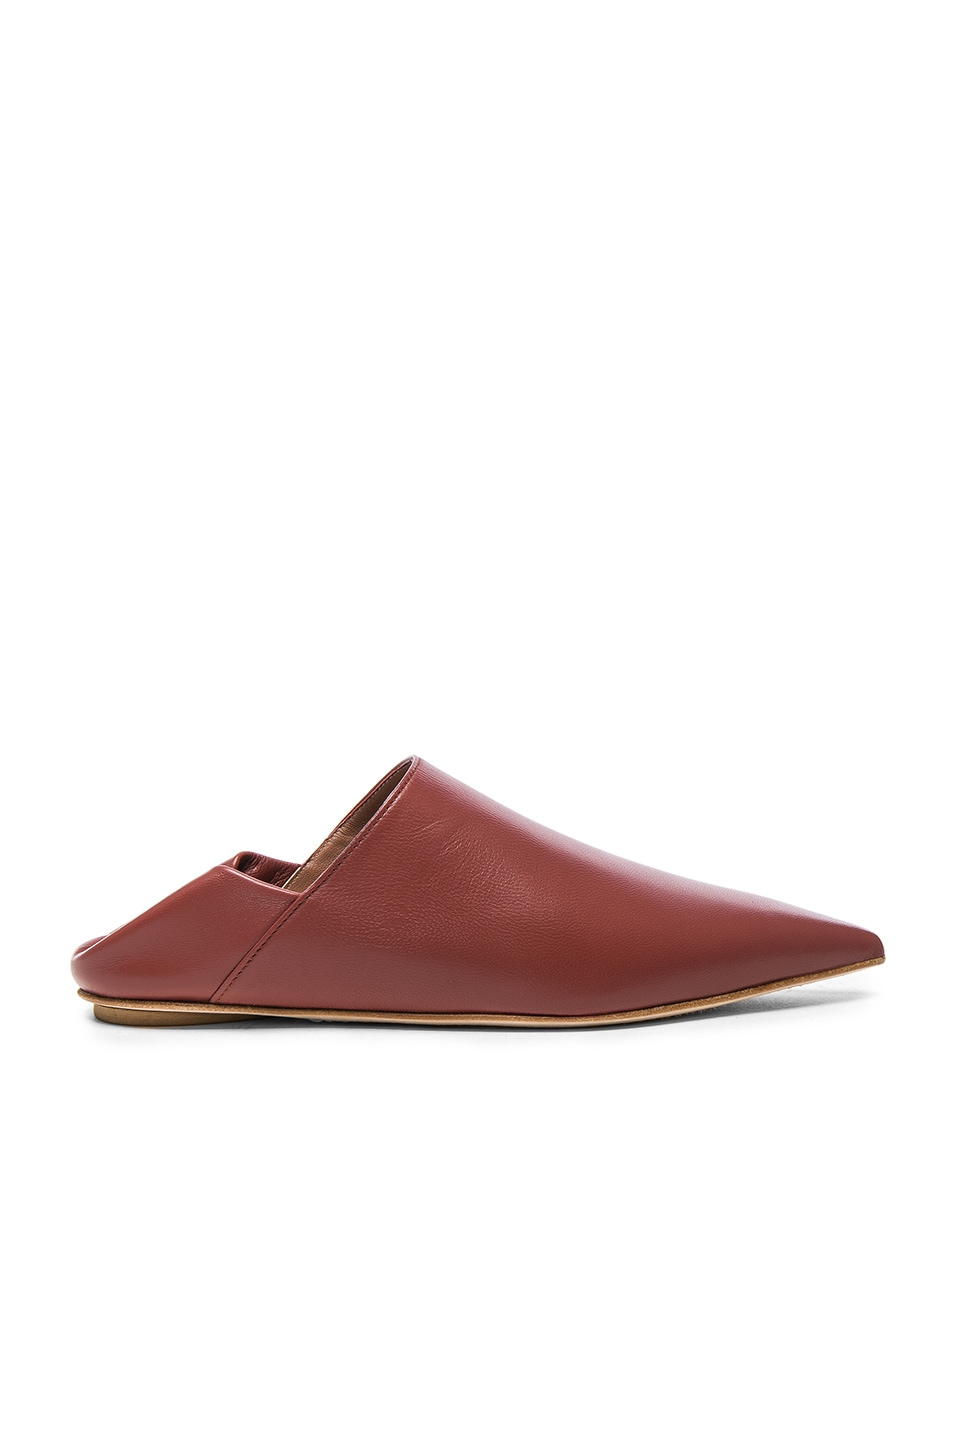 Image 1 of Marni Leather Sabot Mules in Saddle Brown